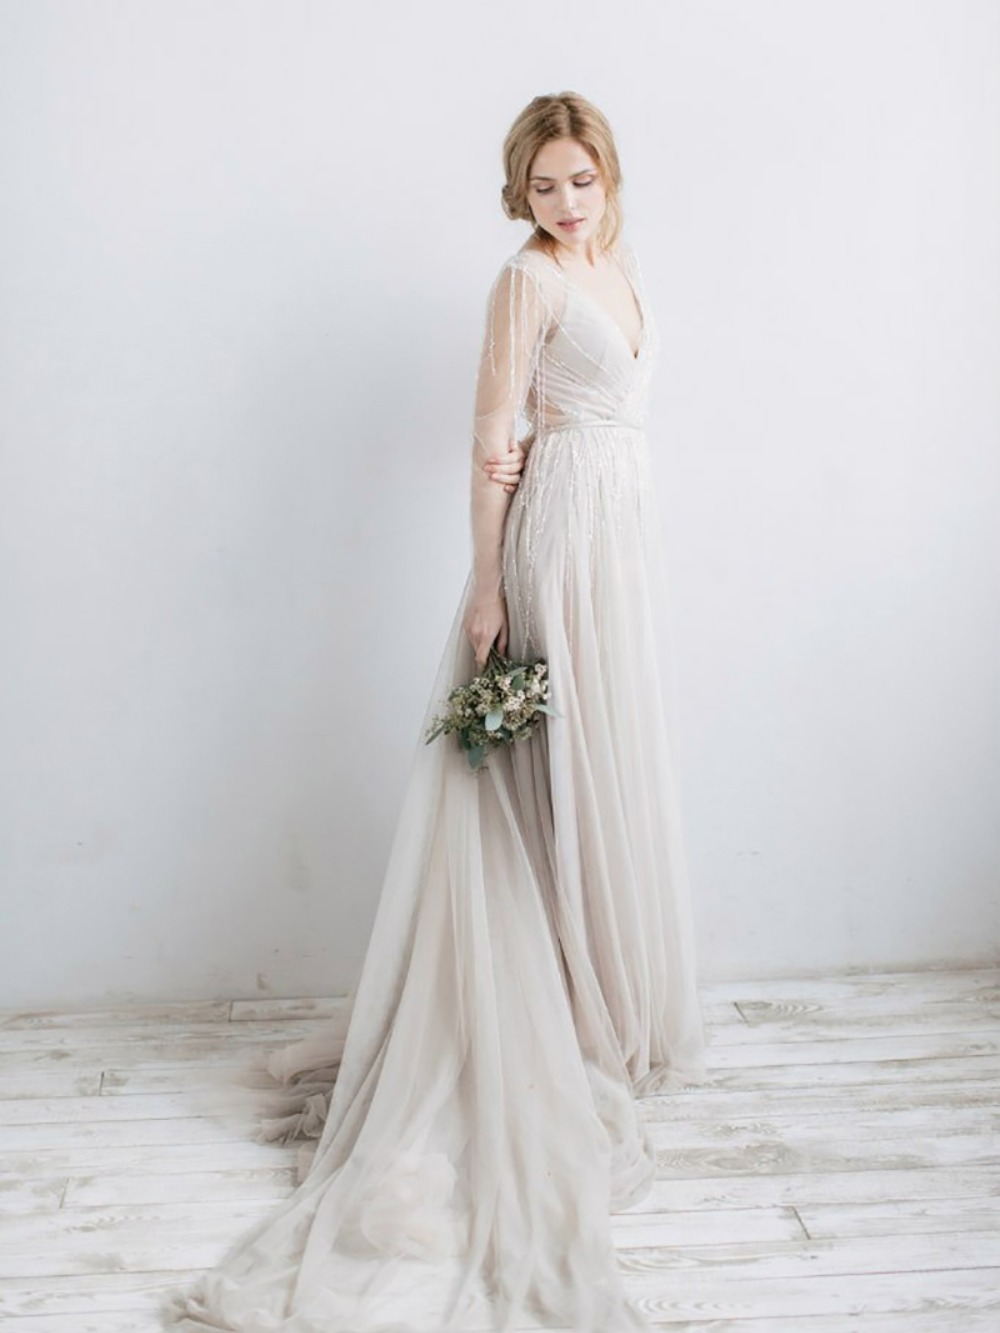 Trending - 12 Dreamy Wedding Dresses On Etsy